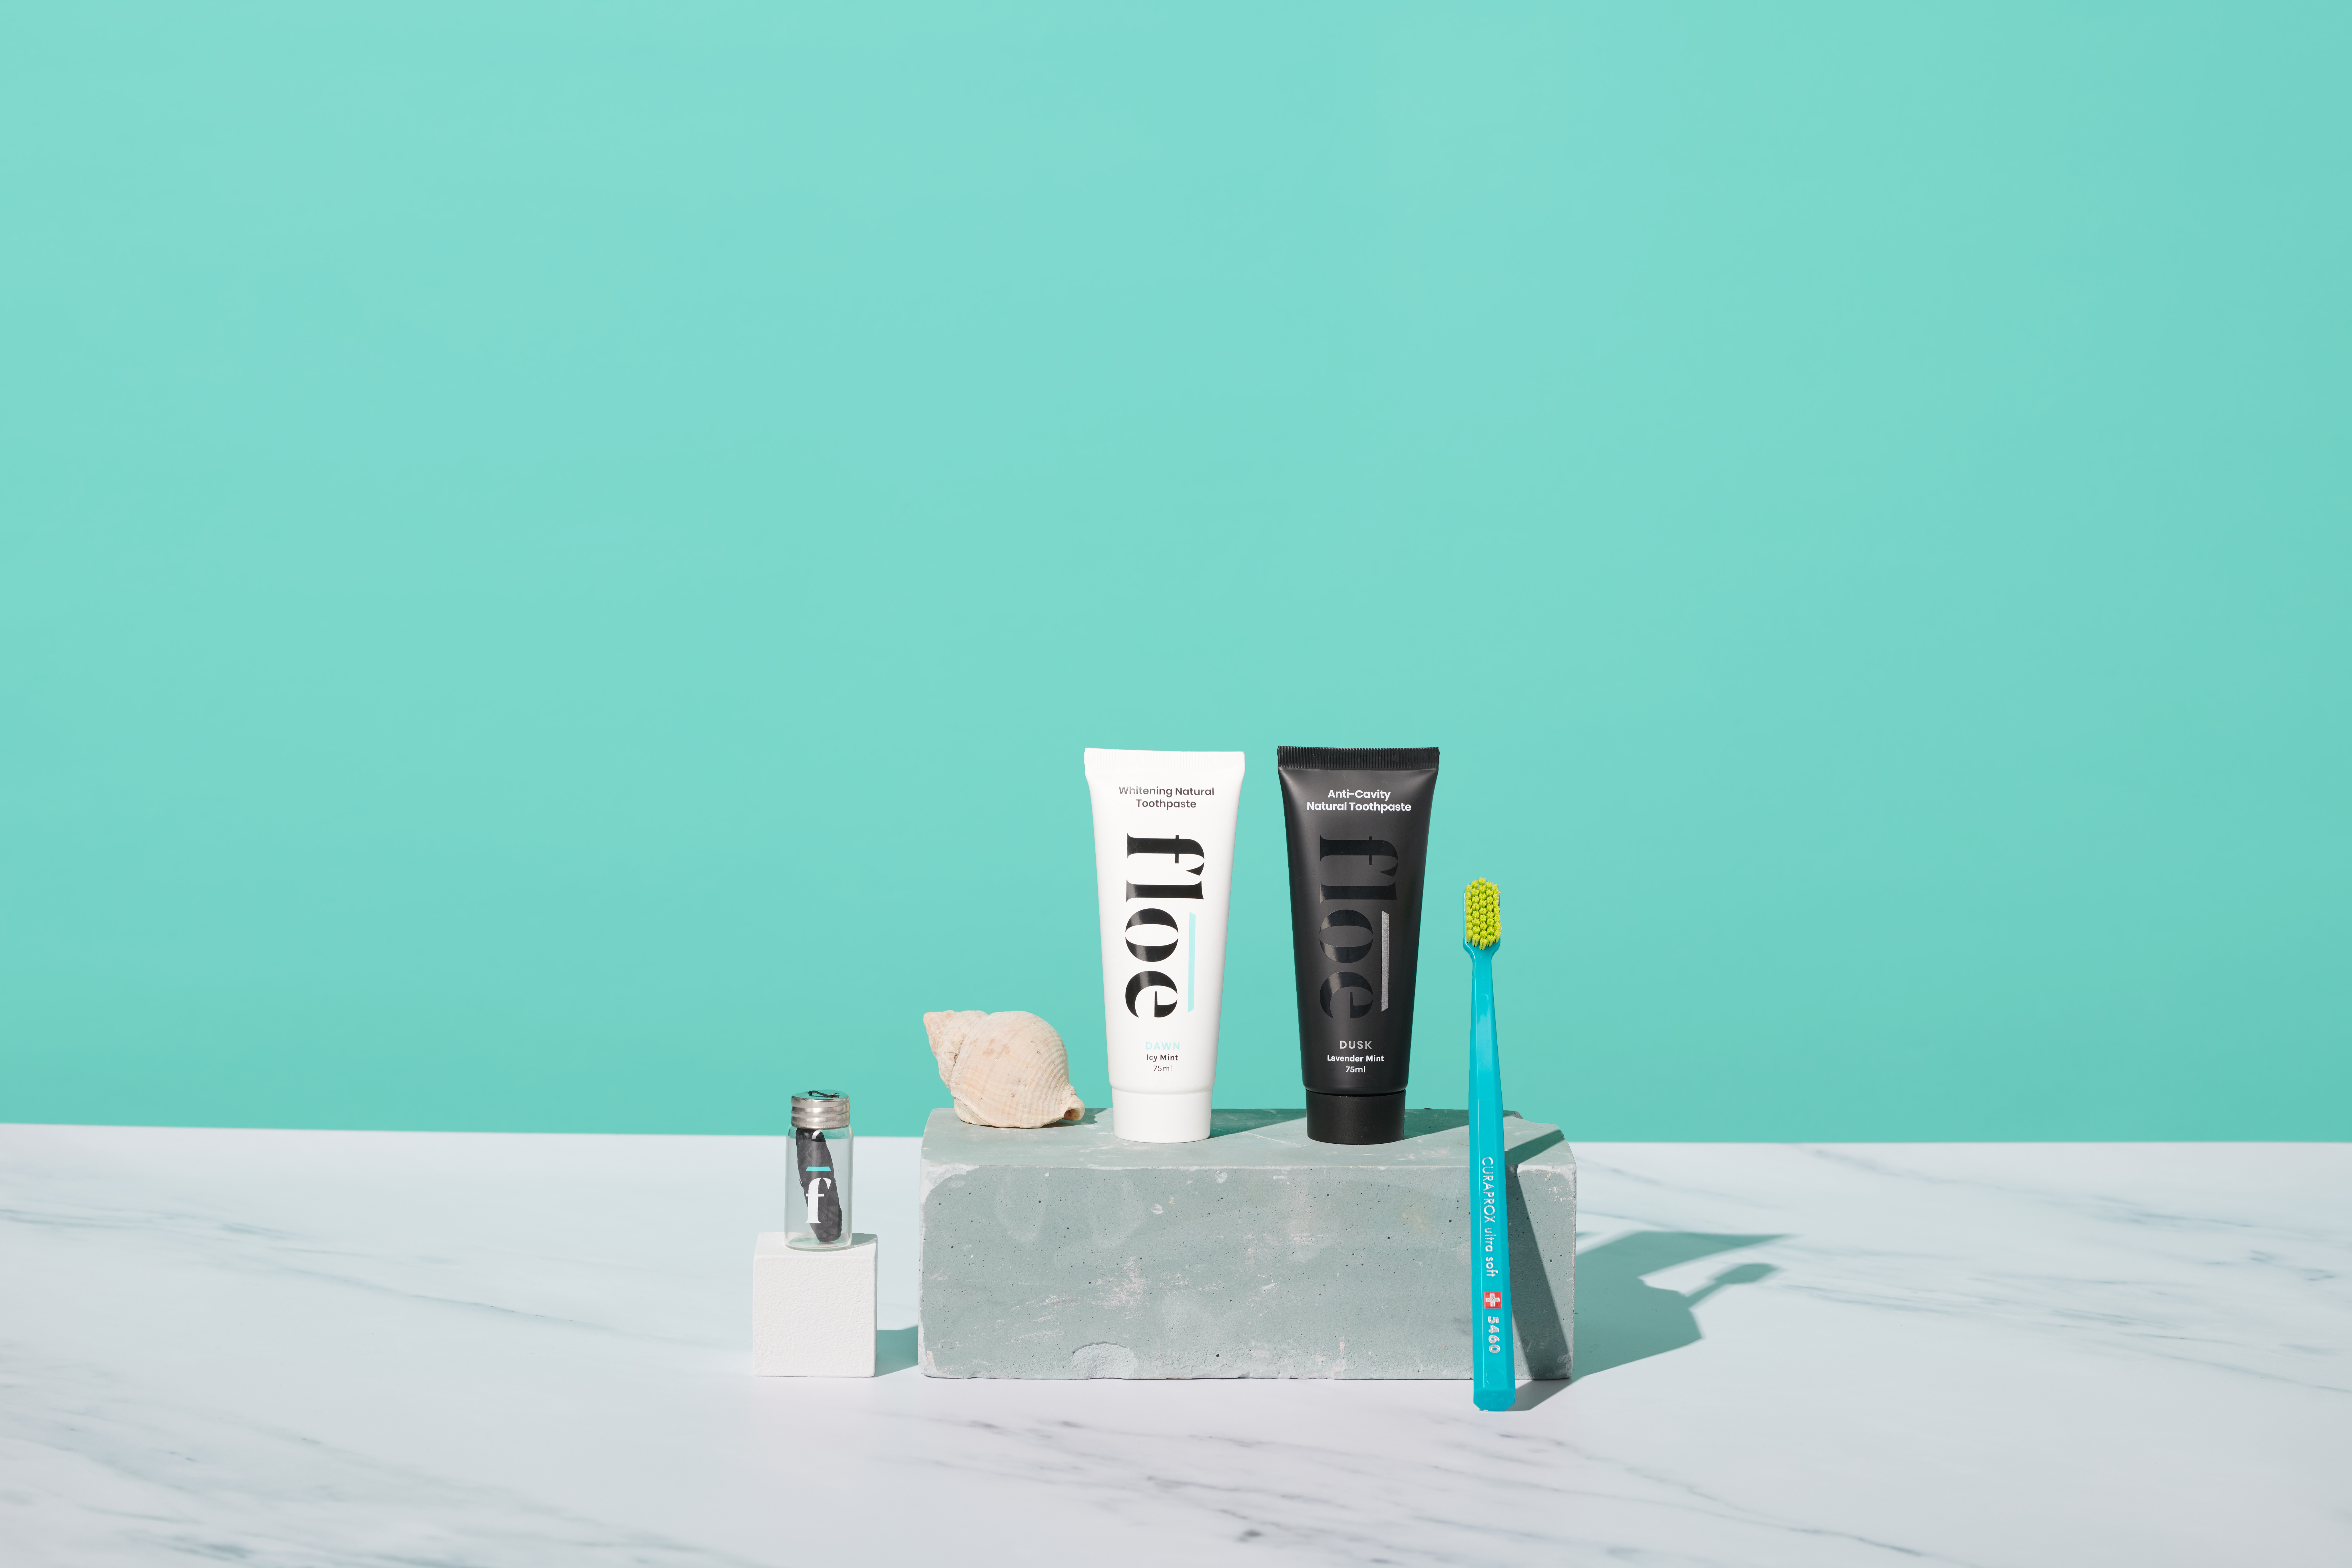 Floe Oral Care is an online subscription service on a mission to address the UK's dental care timebomb by building a preventative routine for consumers and providing vital insights into undetected gum disease.